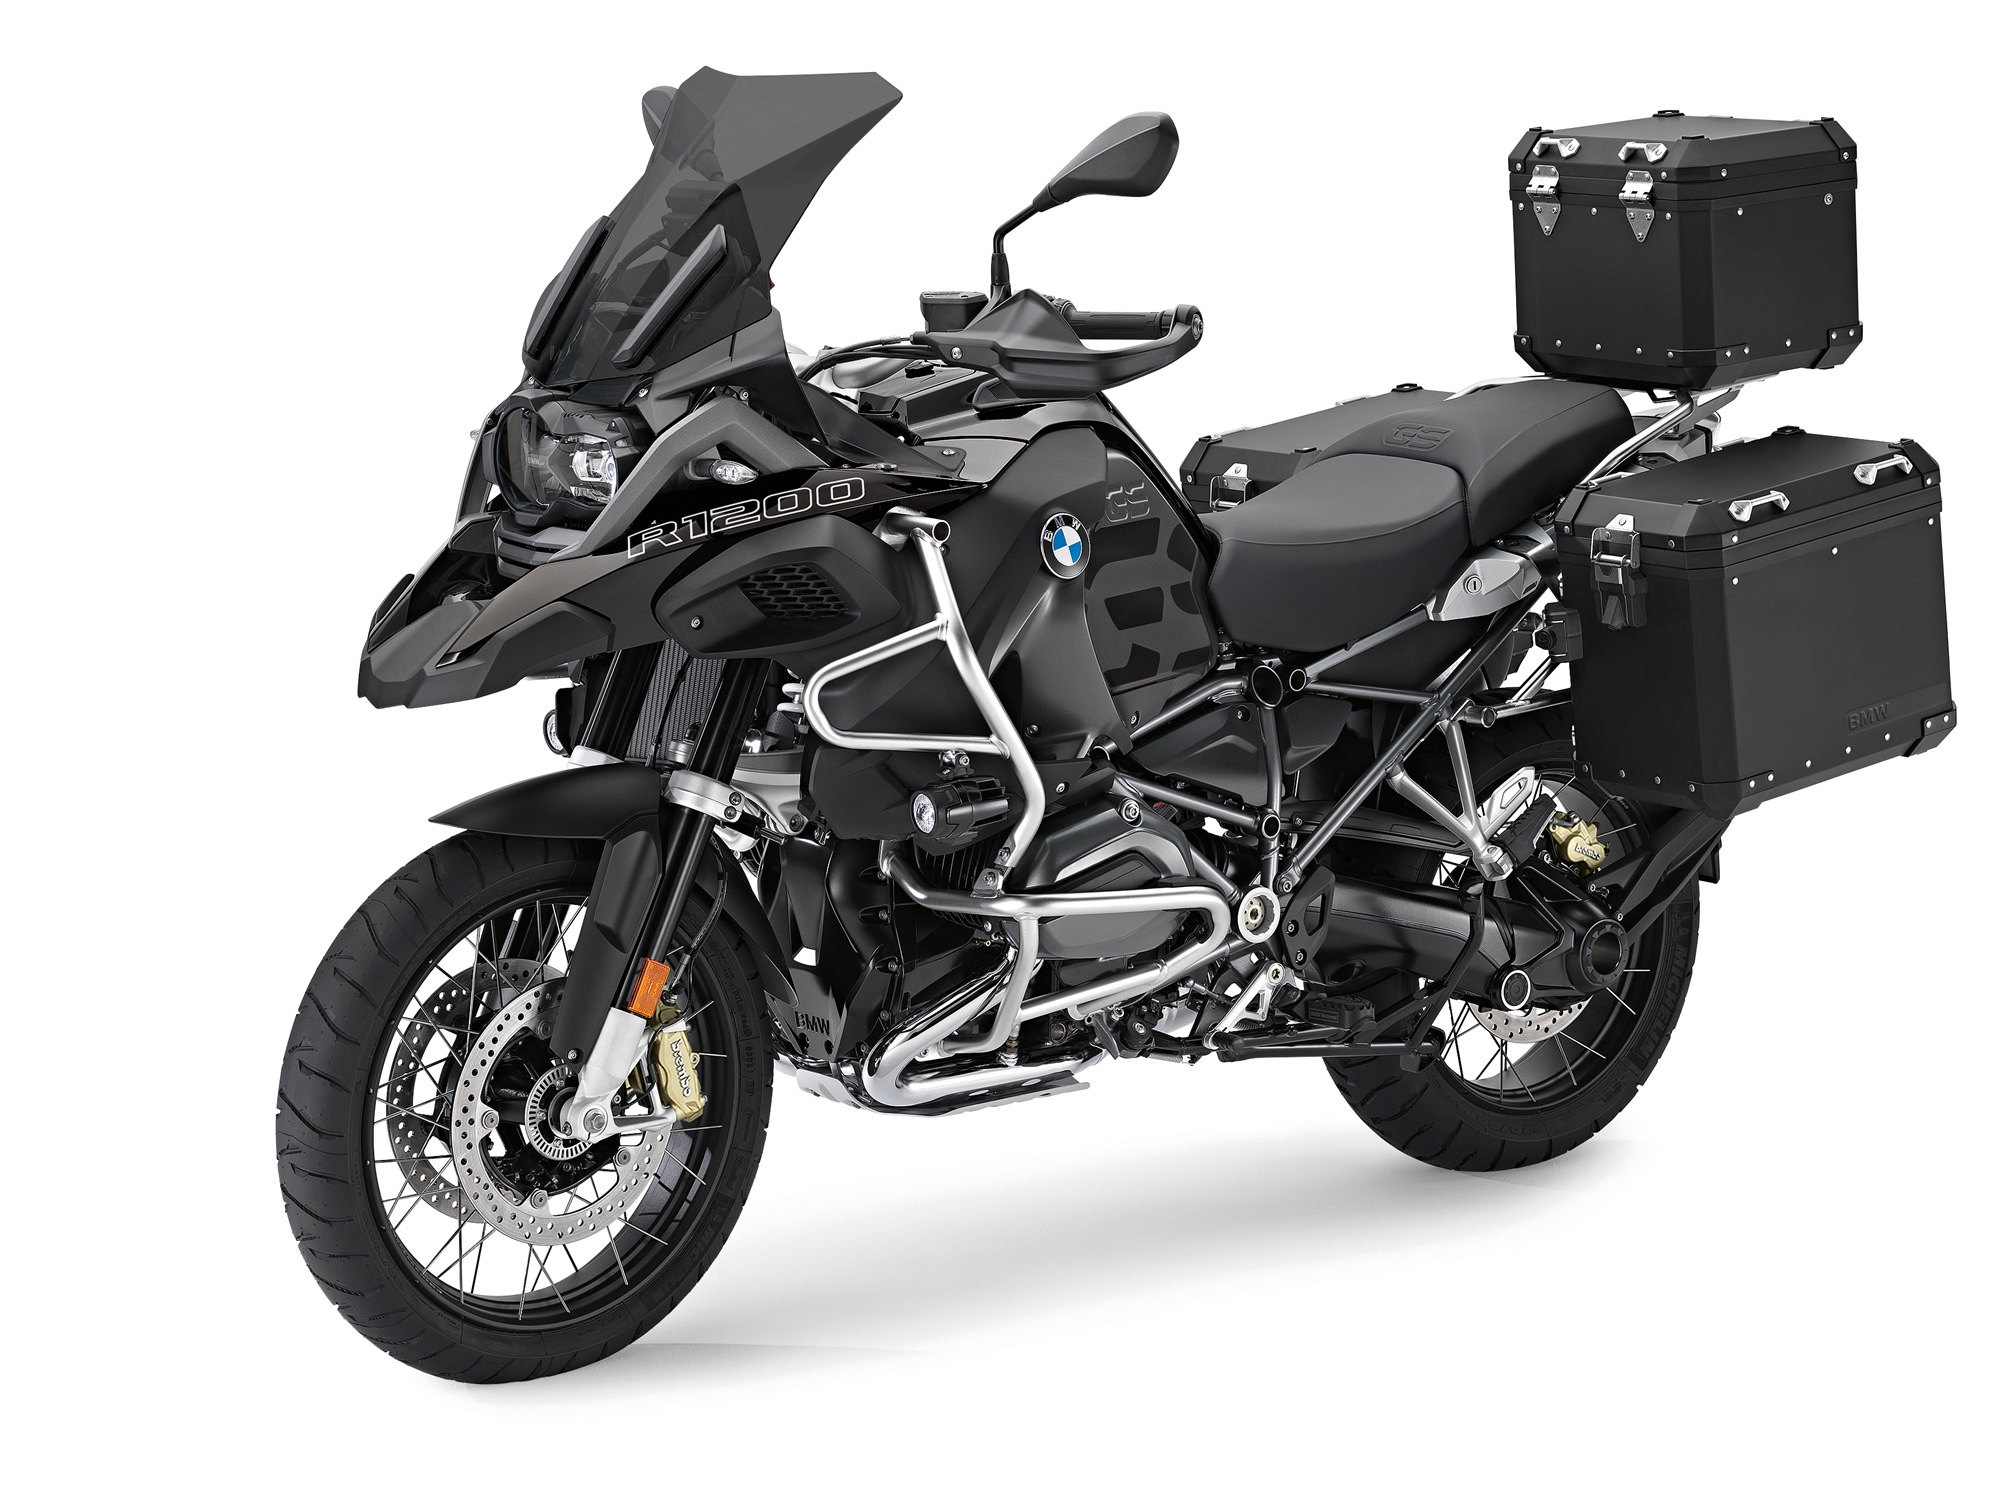 Edition Black accessories for BMW R 1200 GS and R 1200 GS Adventure